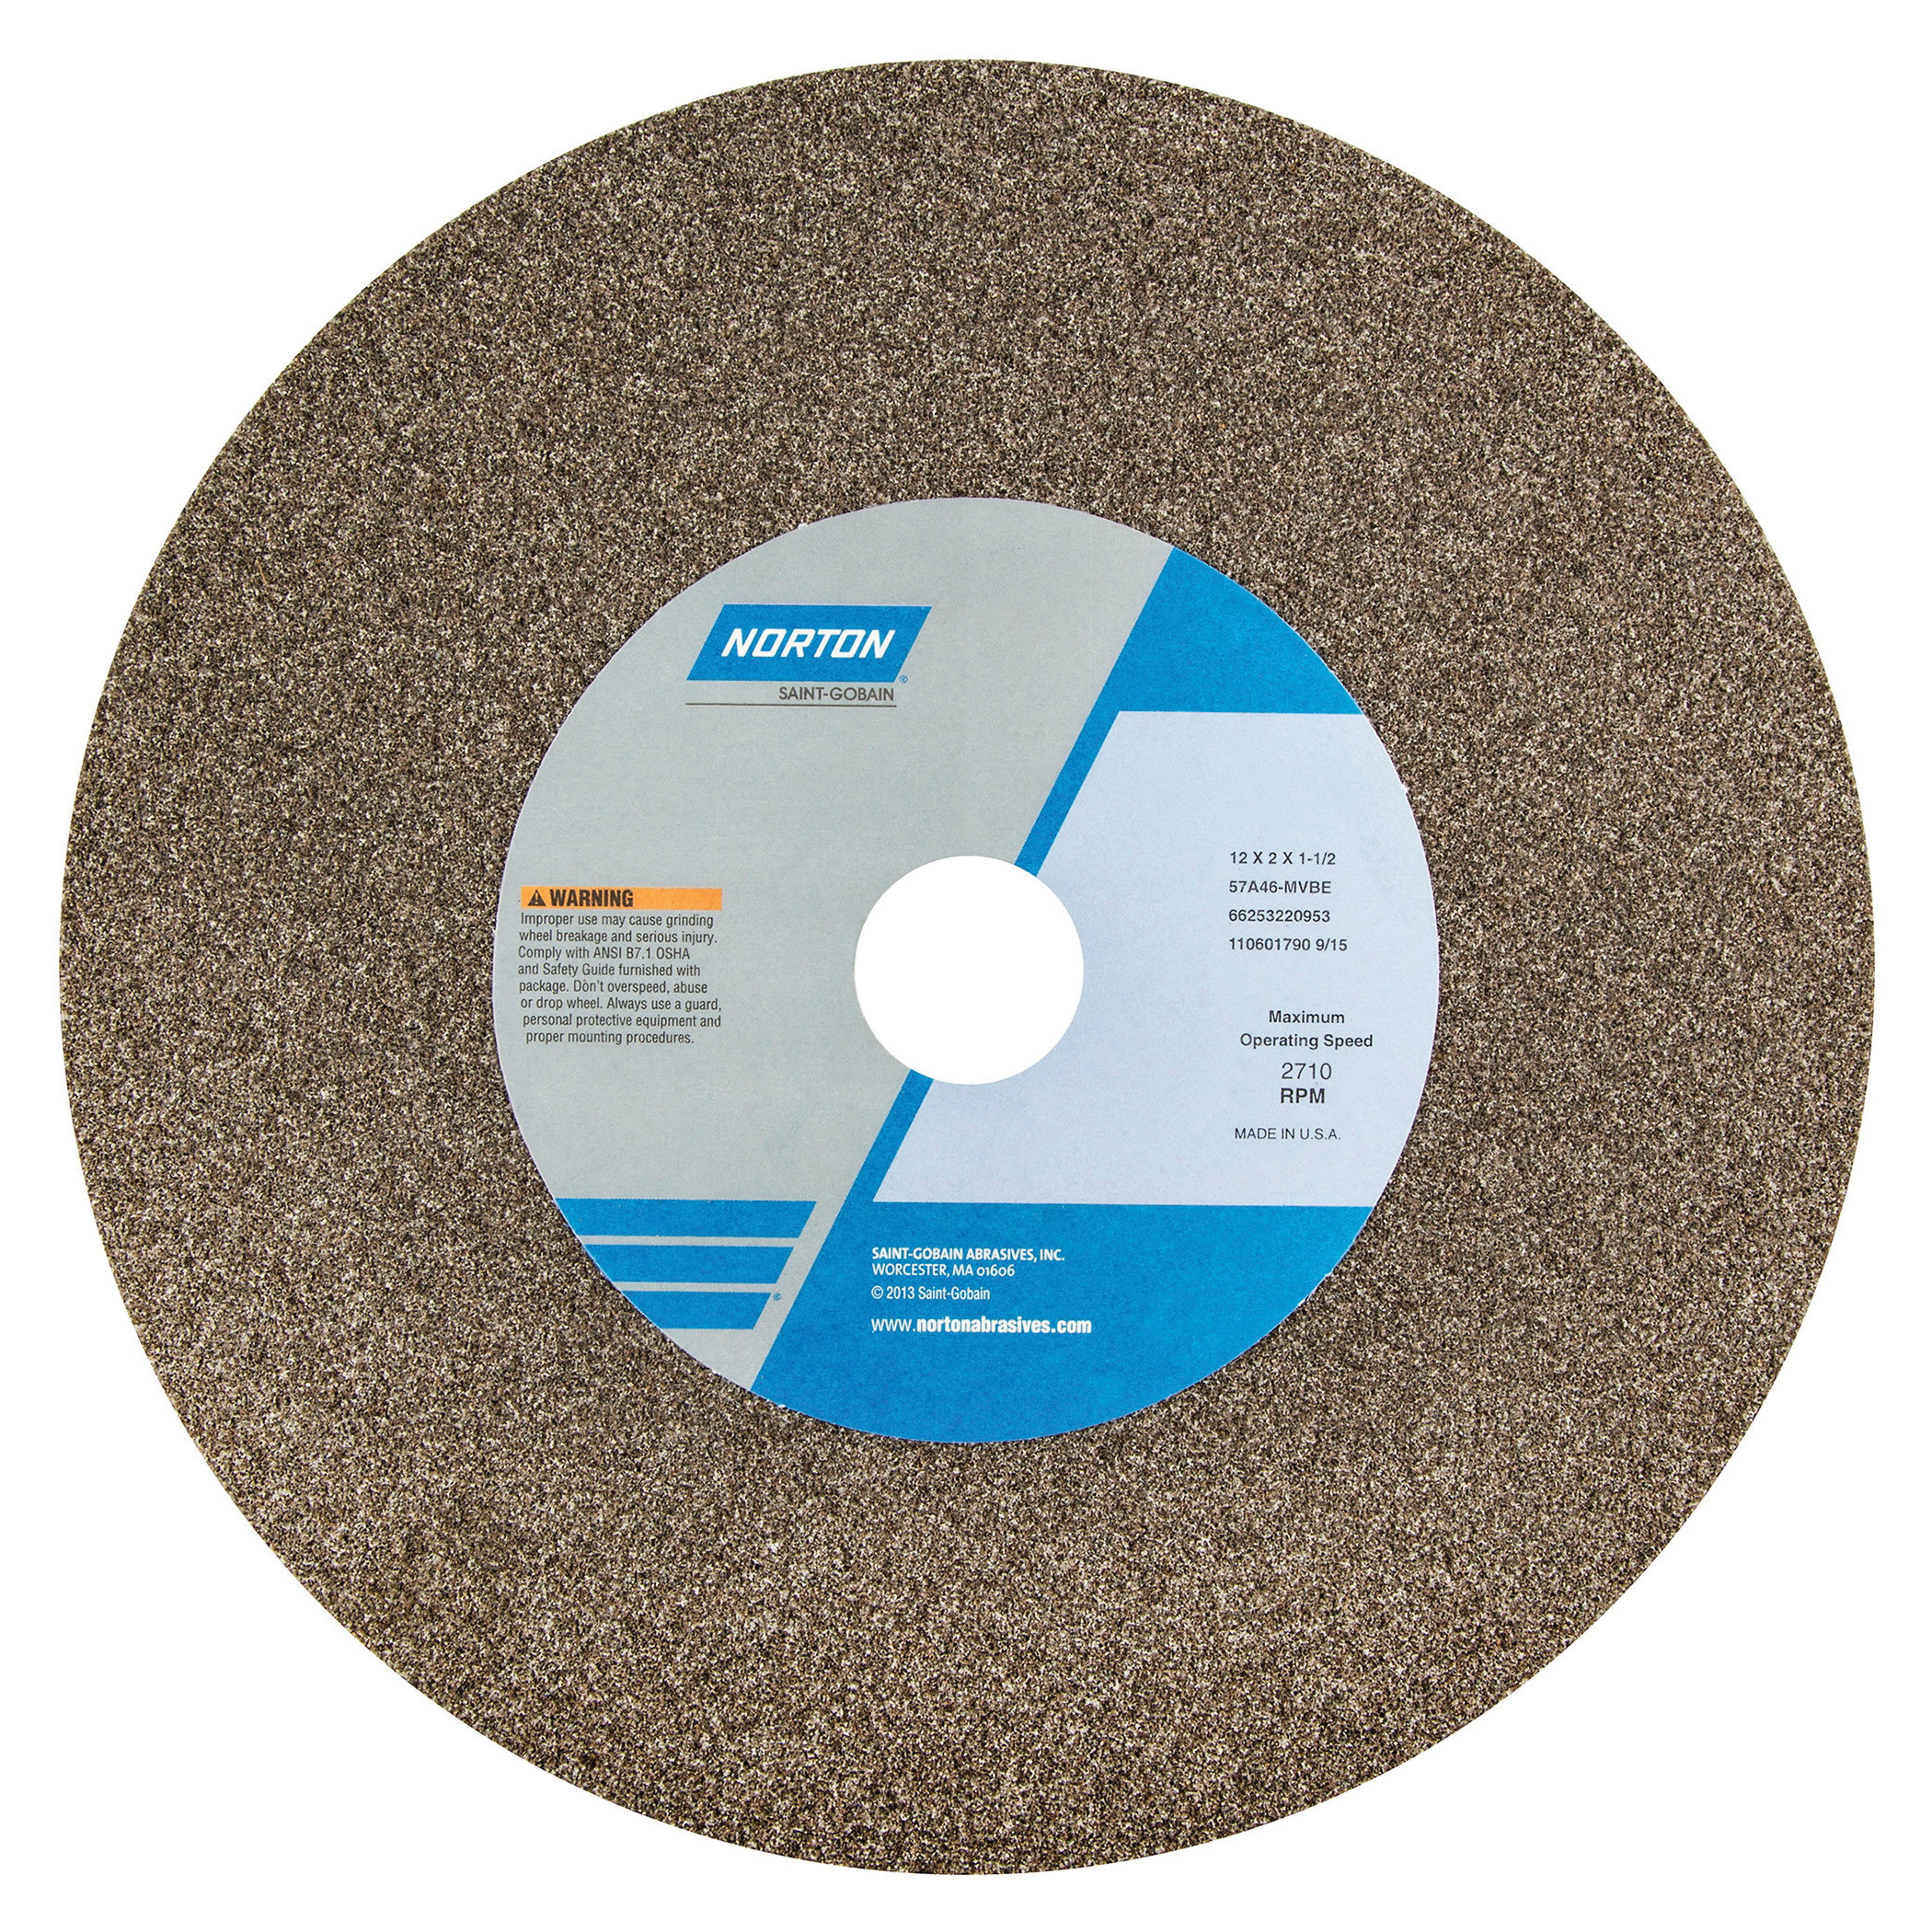 Norton® 66253220947 57A Type 01 Bench and Pedestal Grinding Wheel, 12 in Dia x 1 in THK, 1-1/4 in Center Hole, 46 Grit, Aluminum Oxide Abrasive